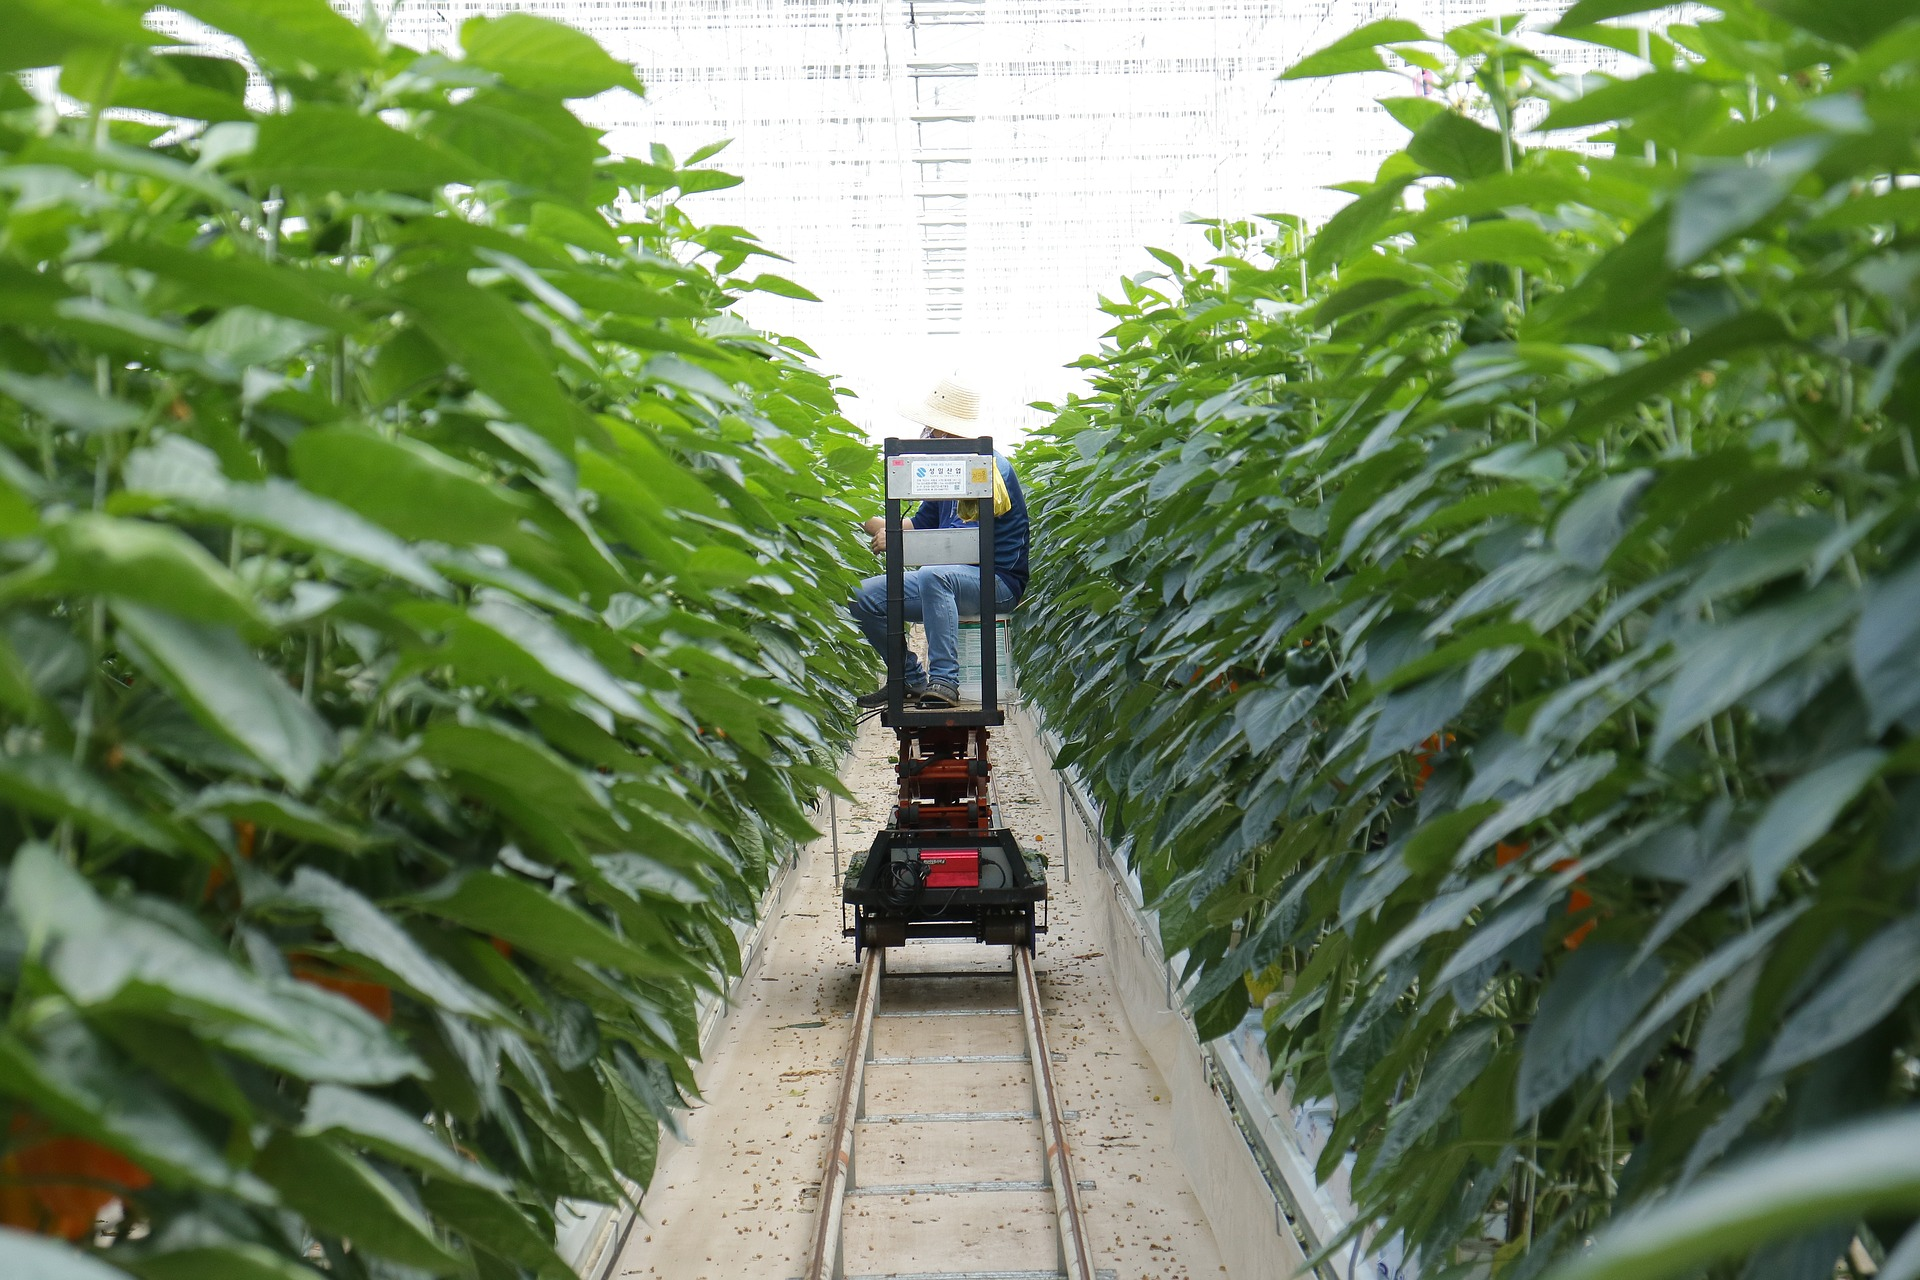 How iot tech help in smart farming